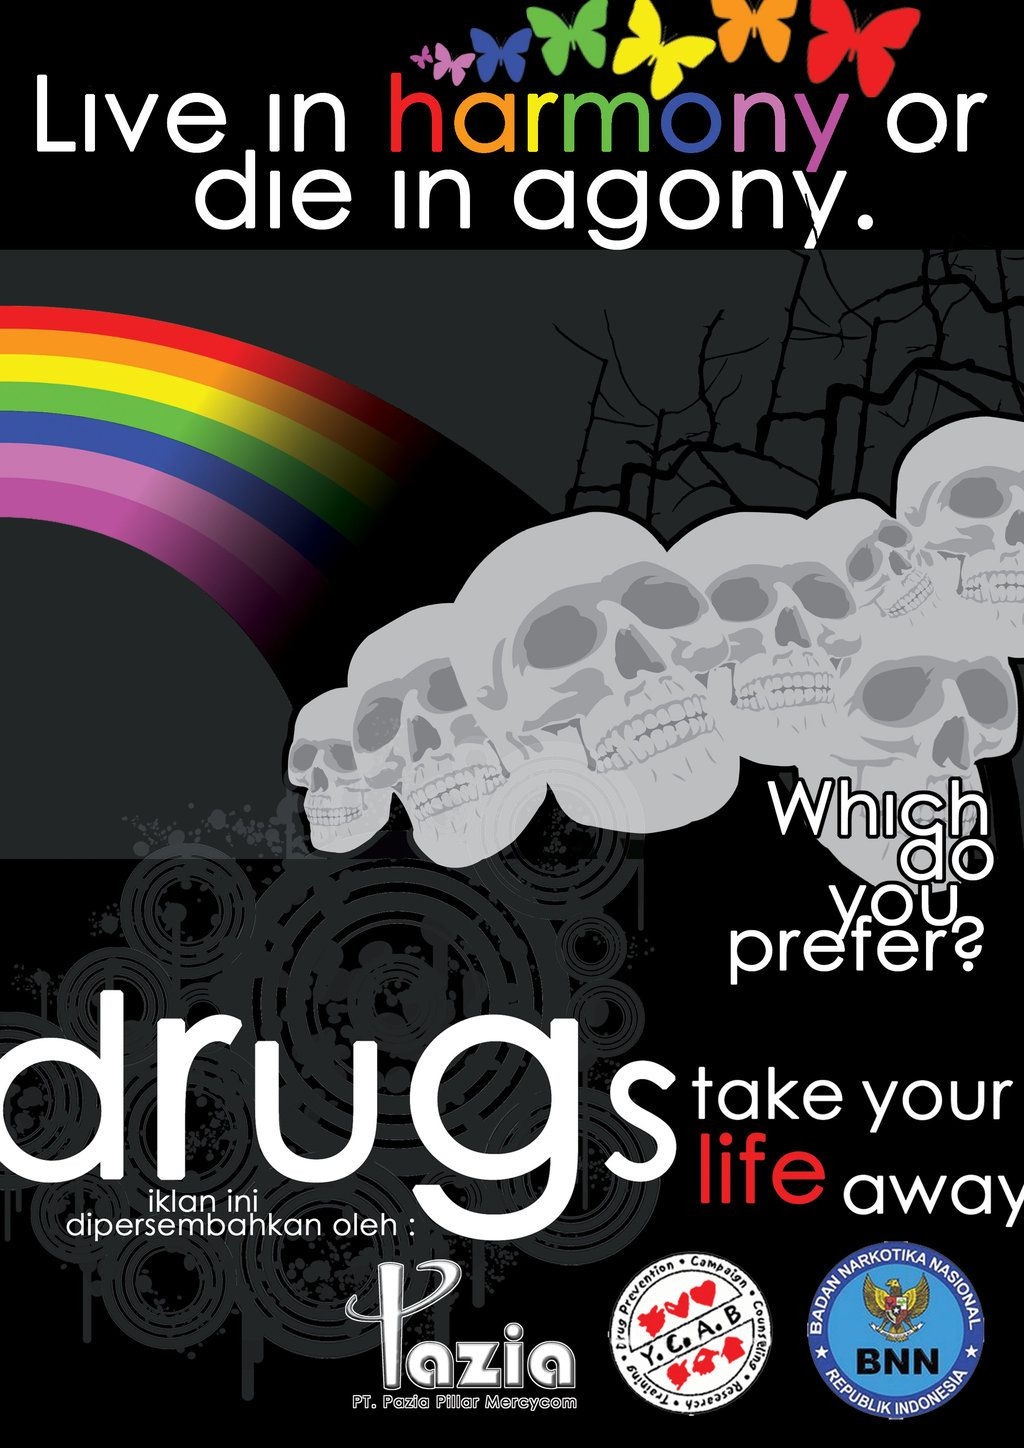 drug posters anti drug poster belugadesign random anti drug campaign anti drugs campaign